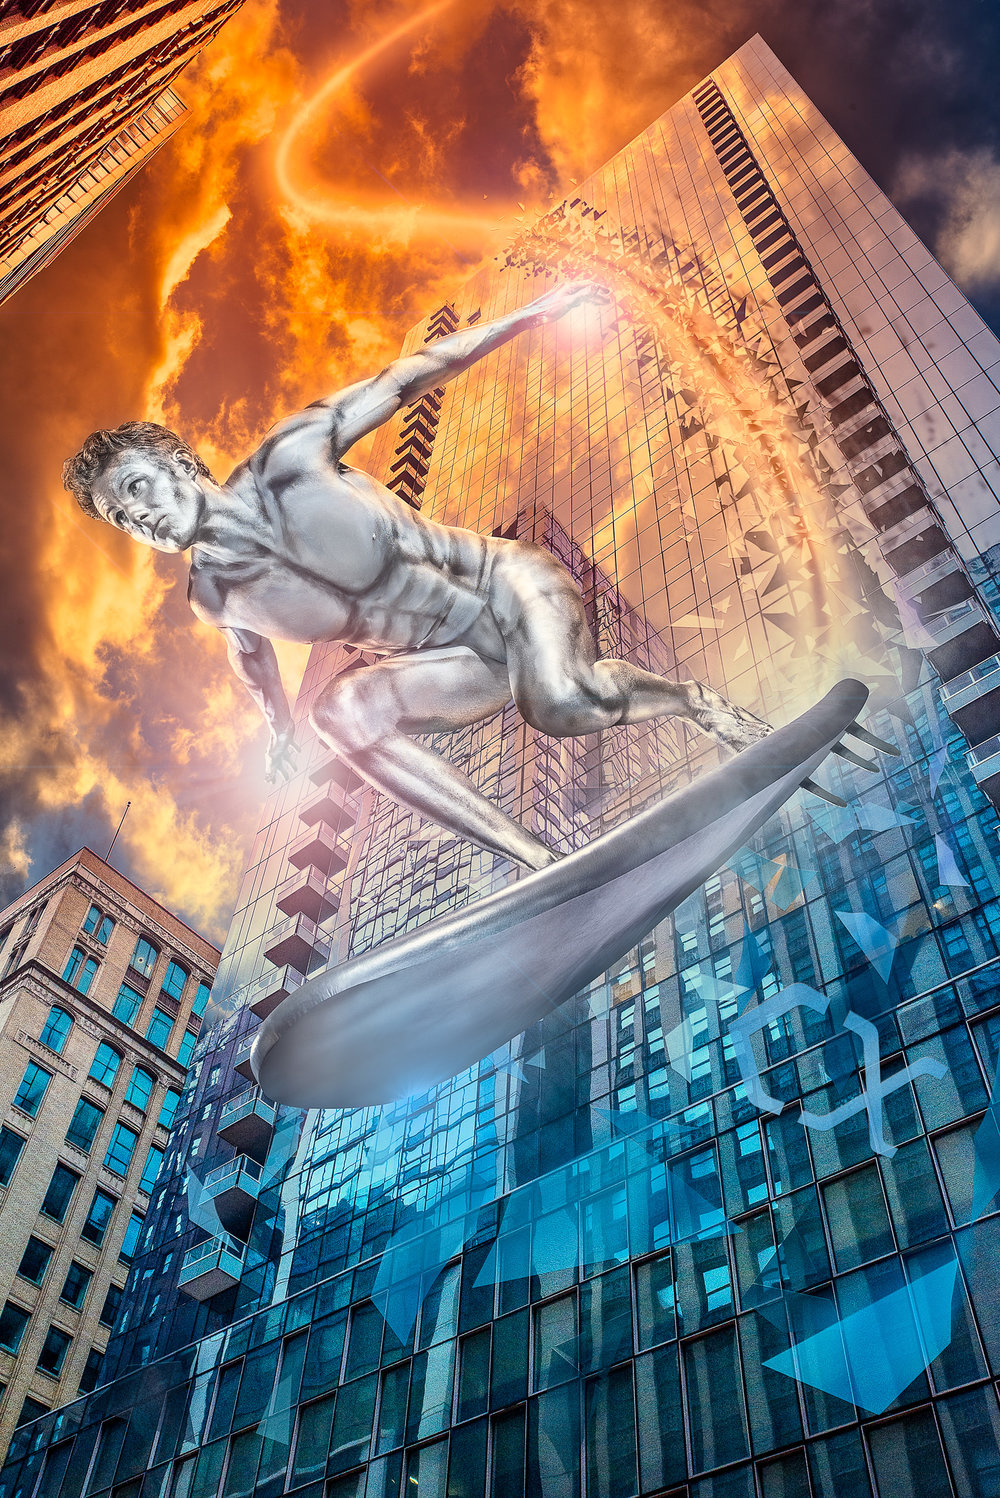 Silver Surfer Chicago II